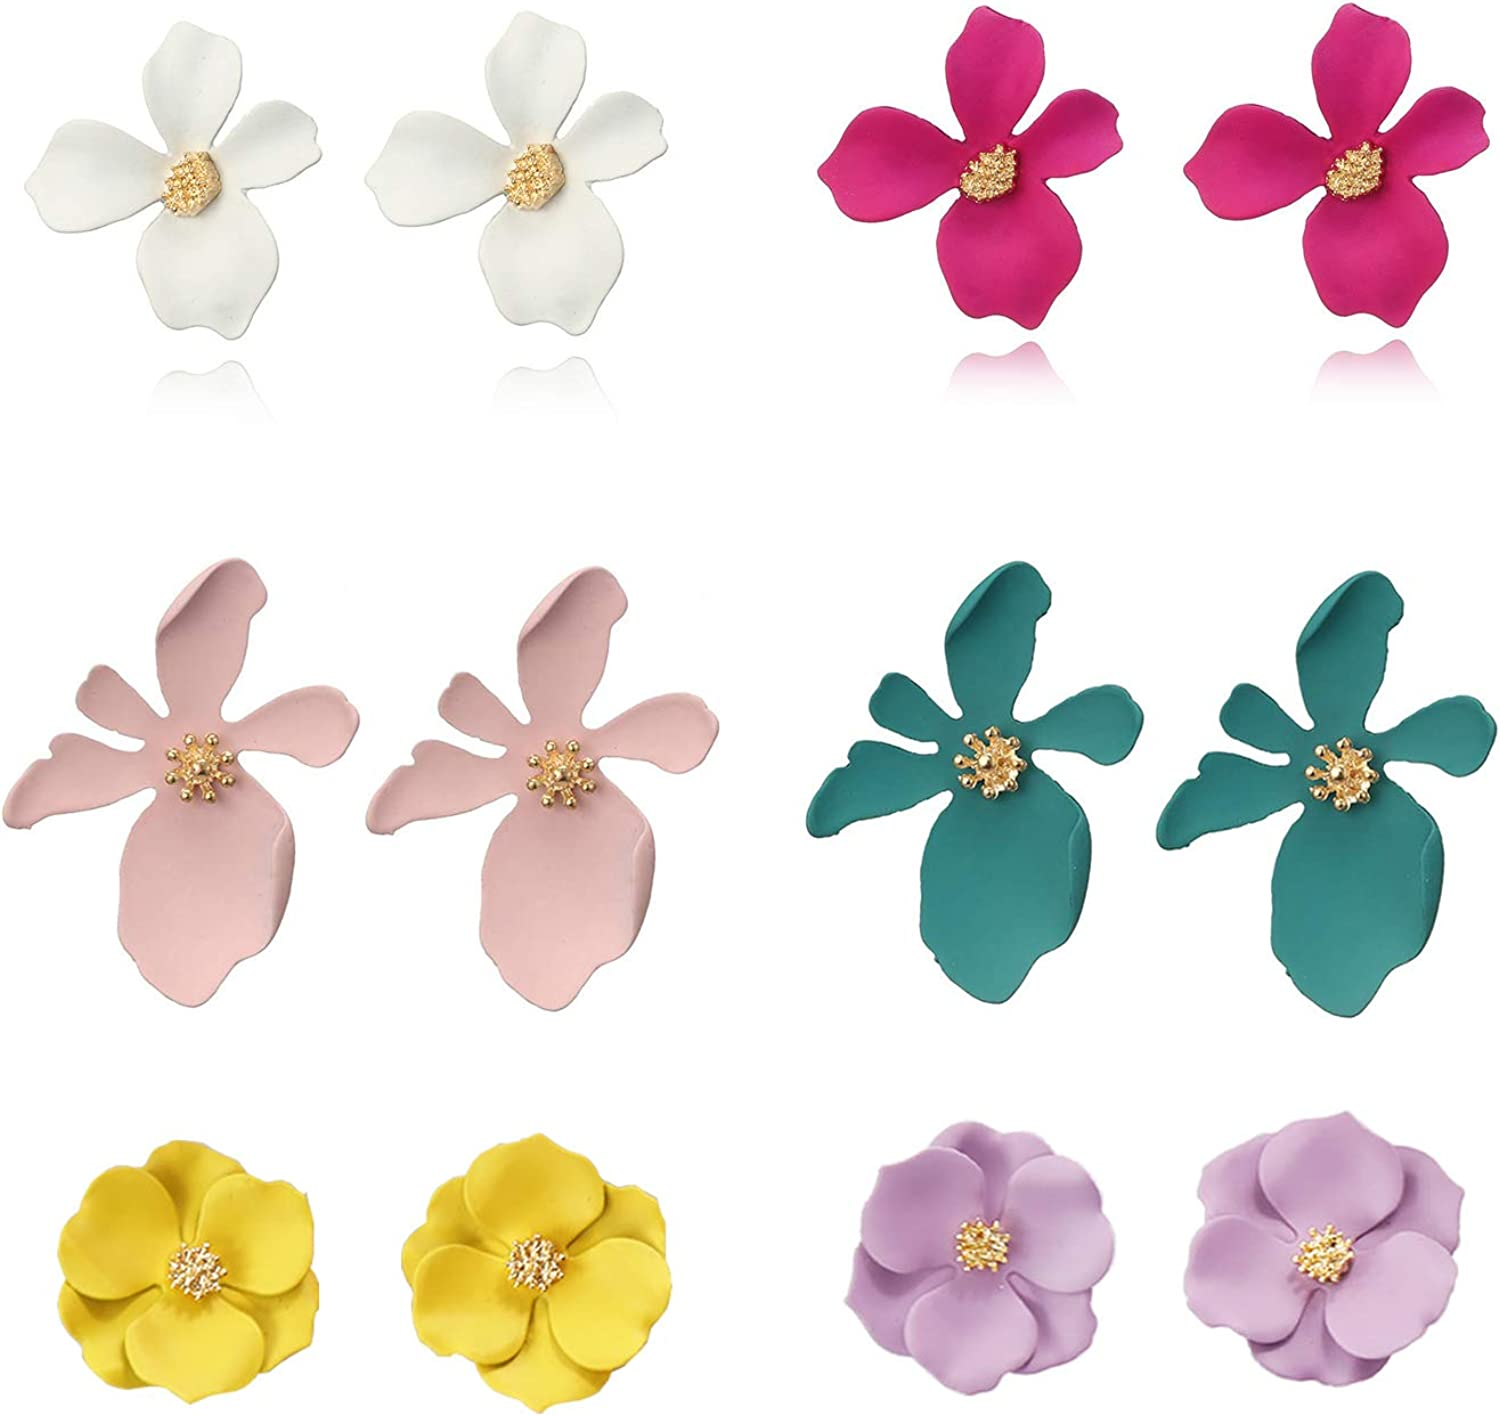 Wremily 6 Pairs Boho Flowers Stud Earrings Set for Women Girls Chic Petal Flower Statement Earrings with Gold Flower Bud,3 Different Style